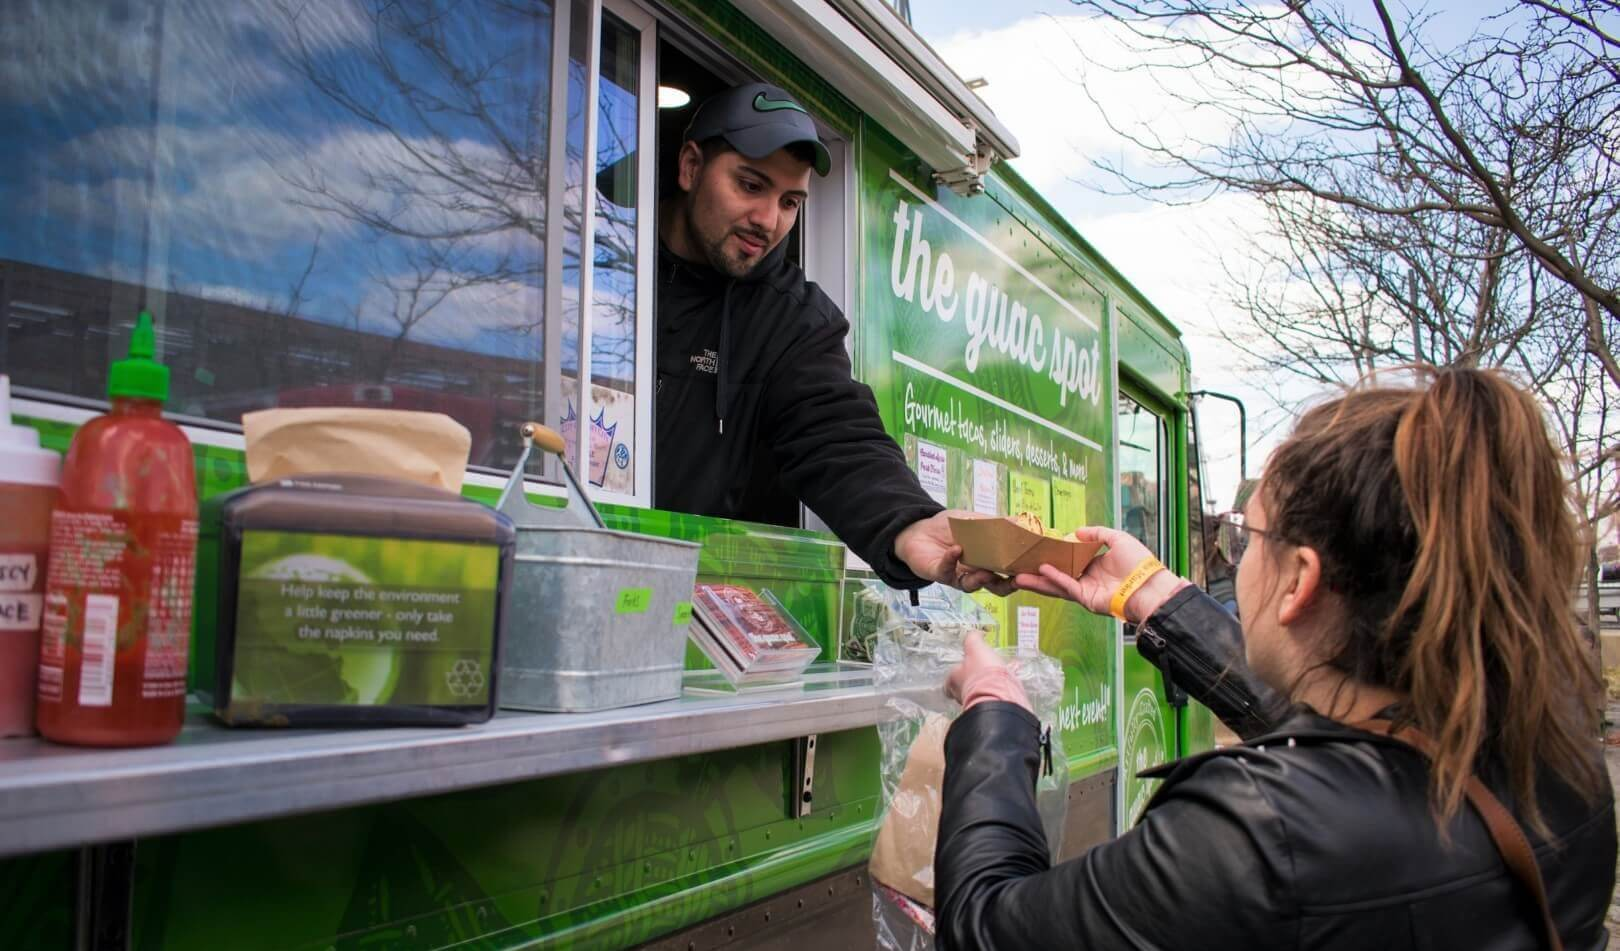 The Best New Jersey Food Trucks Spotlight on The Guac Spot